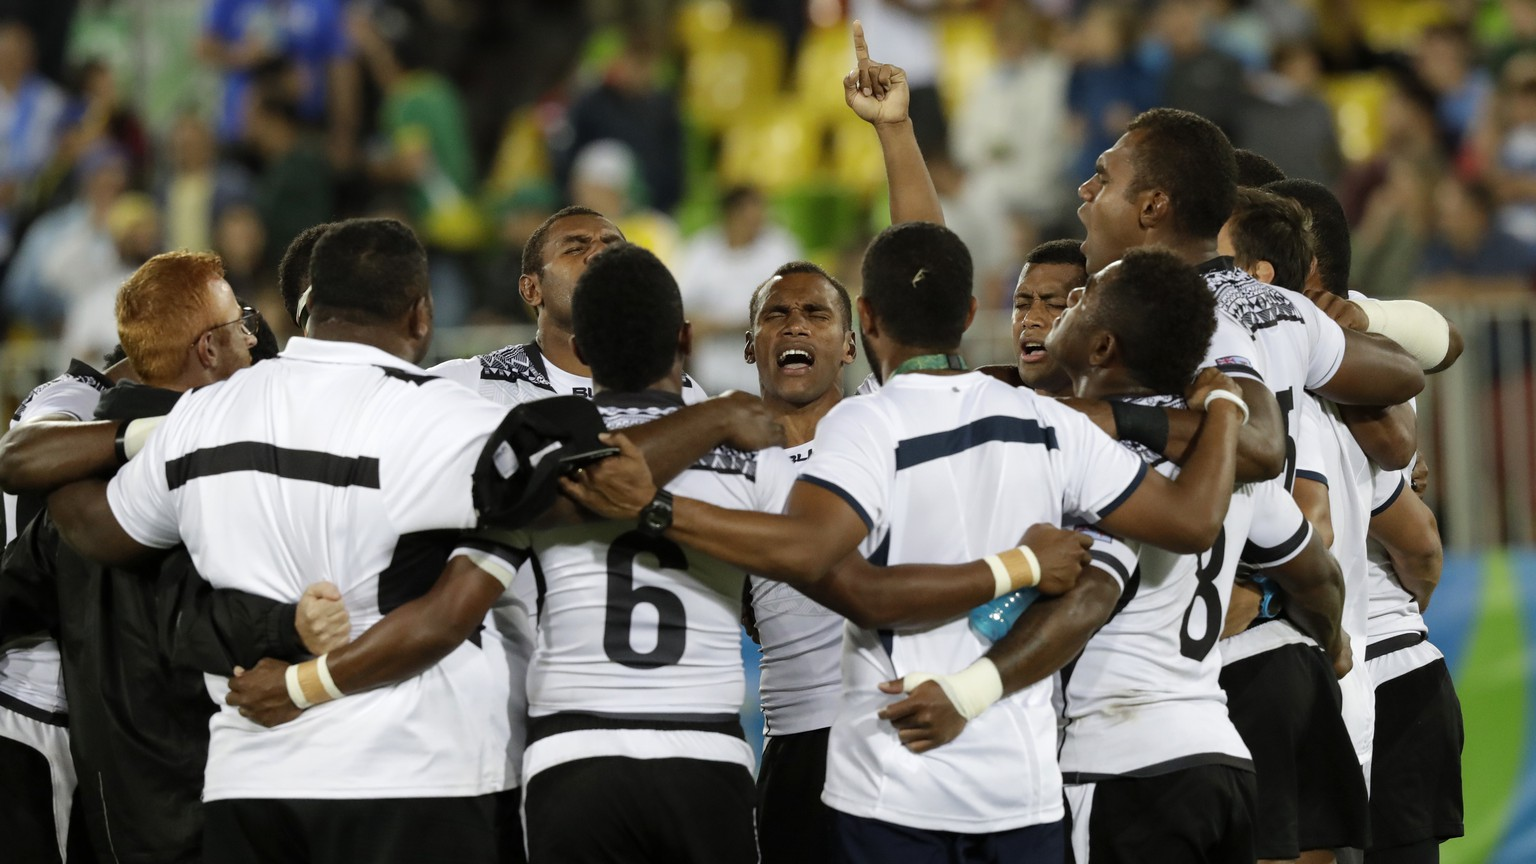 Fiji celebrates its the gold medal victory over Britain in mens rugby sevens at the 2016 Summer Olympics in Rio de Janeiro, Brazil, Thursday, Aug. 11, 2016. (AP Photo/Robert F. Bukaty)